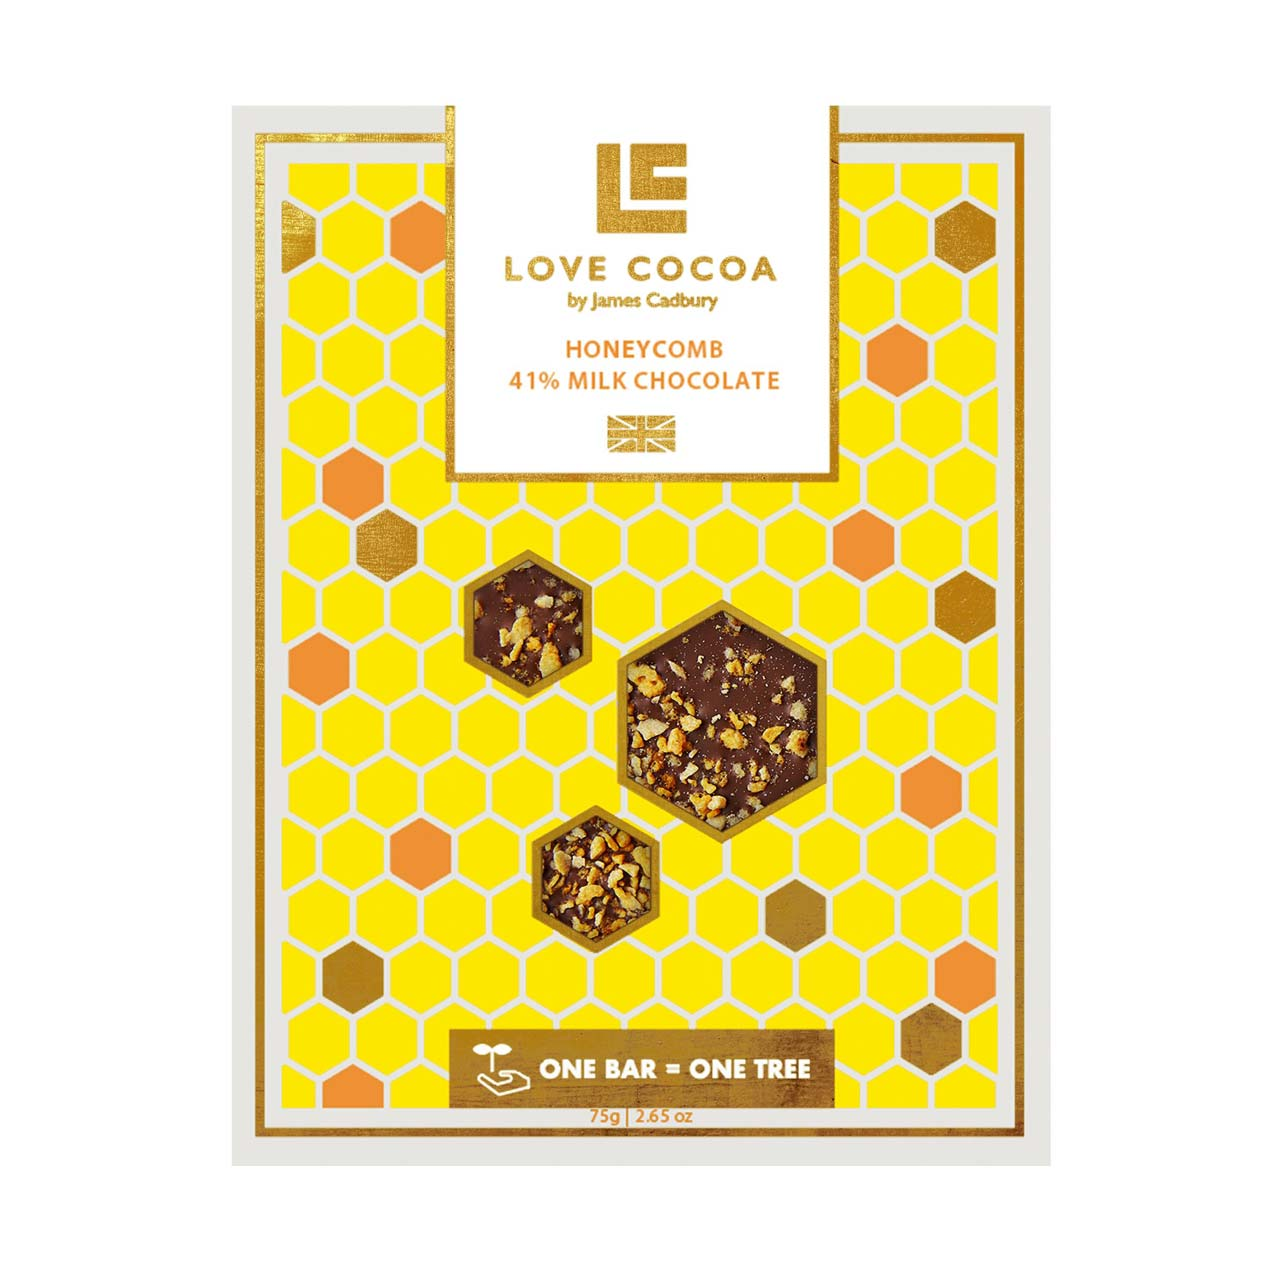 Honeycomb 41% Milk Chocolate Bar